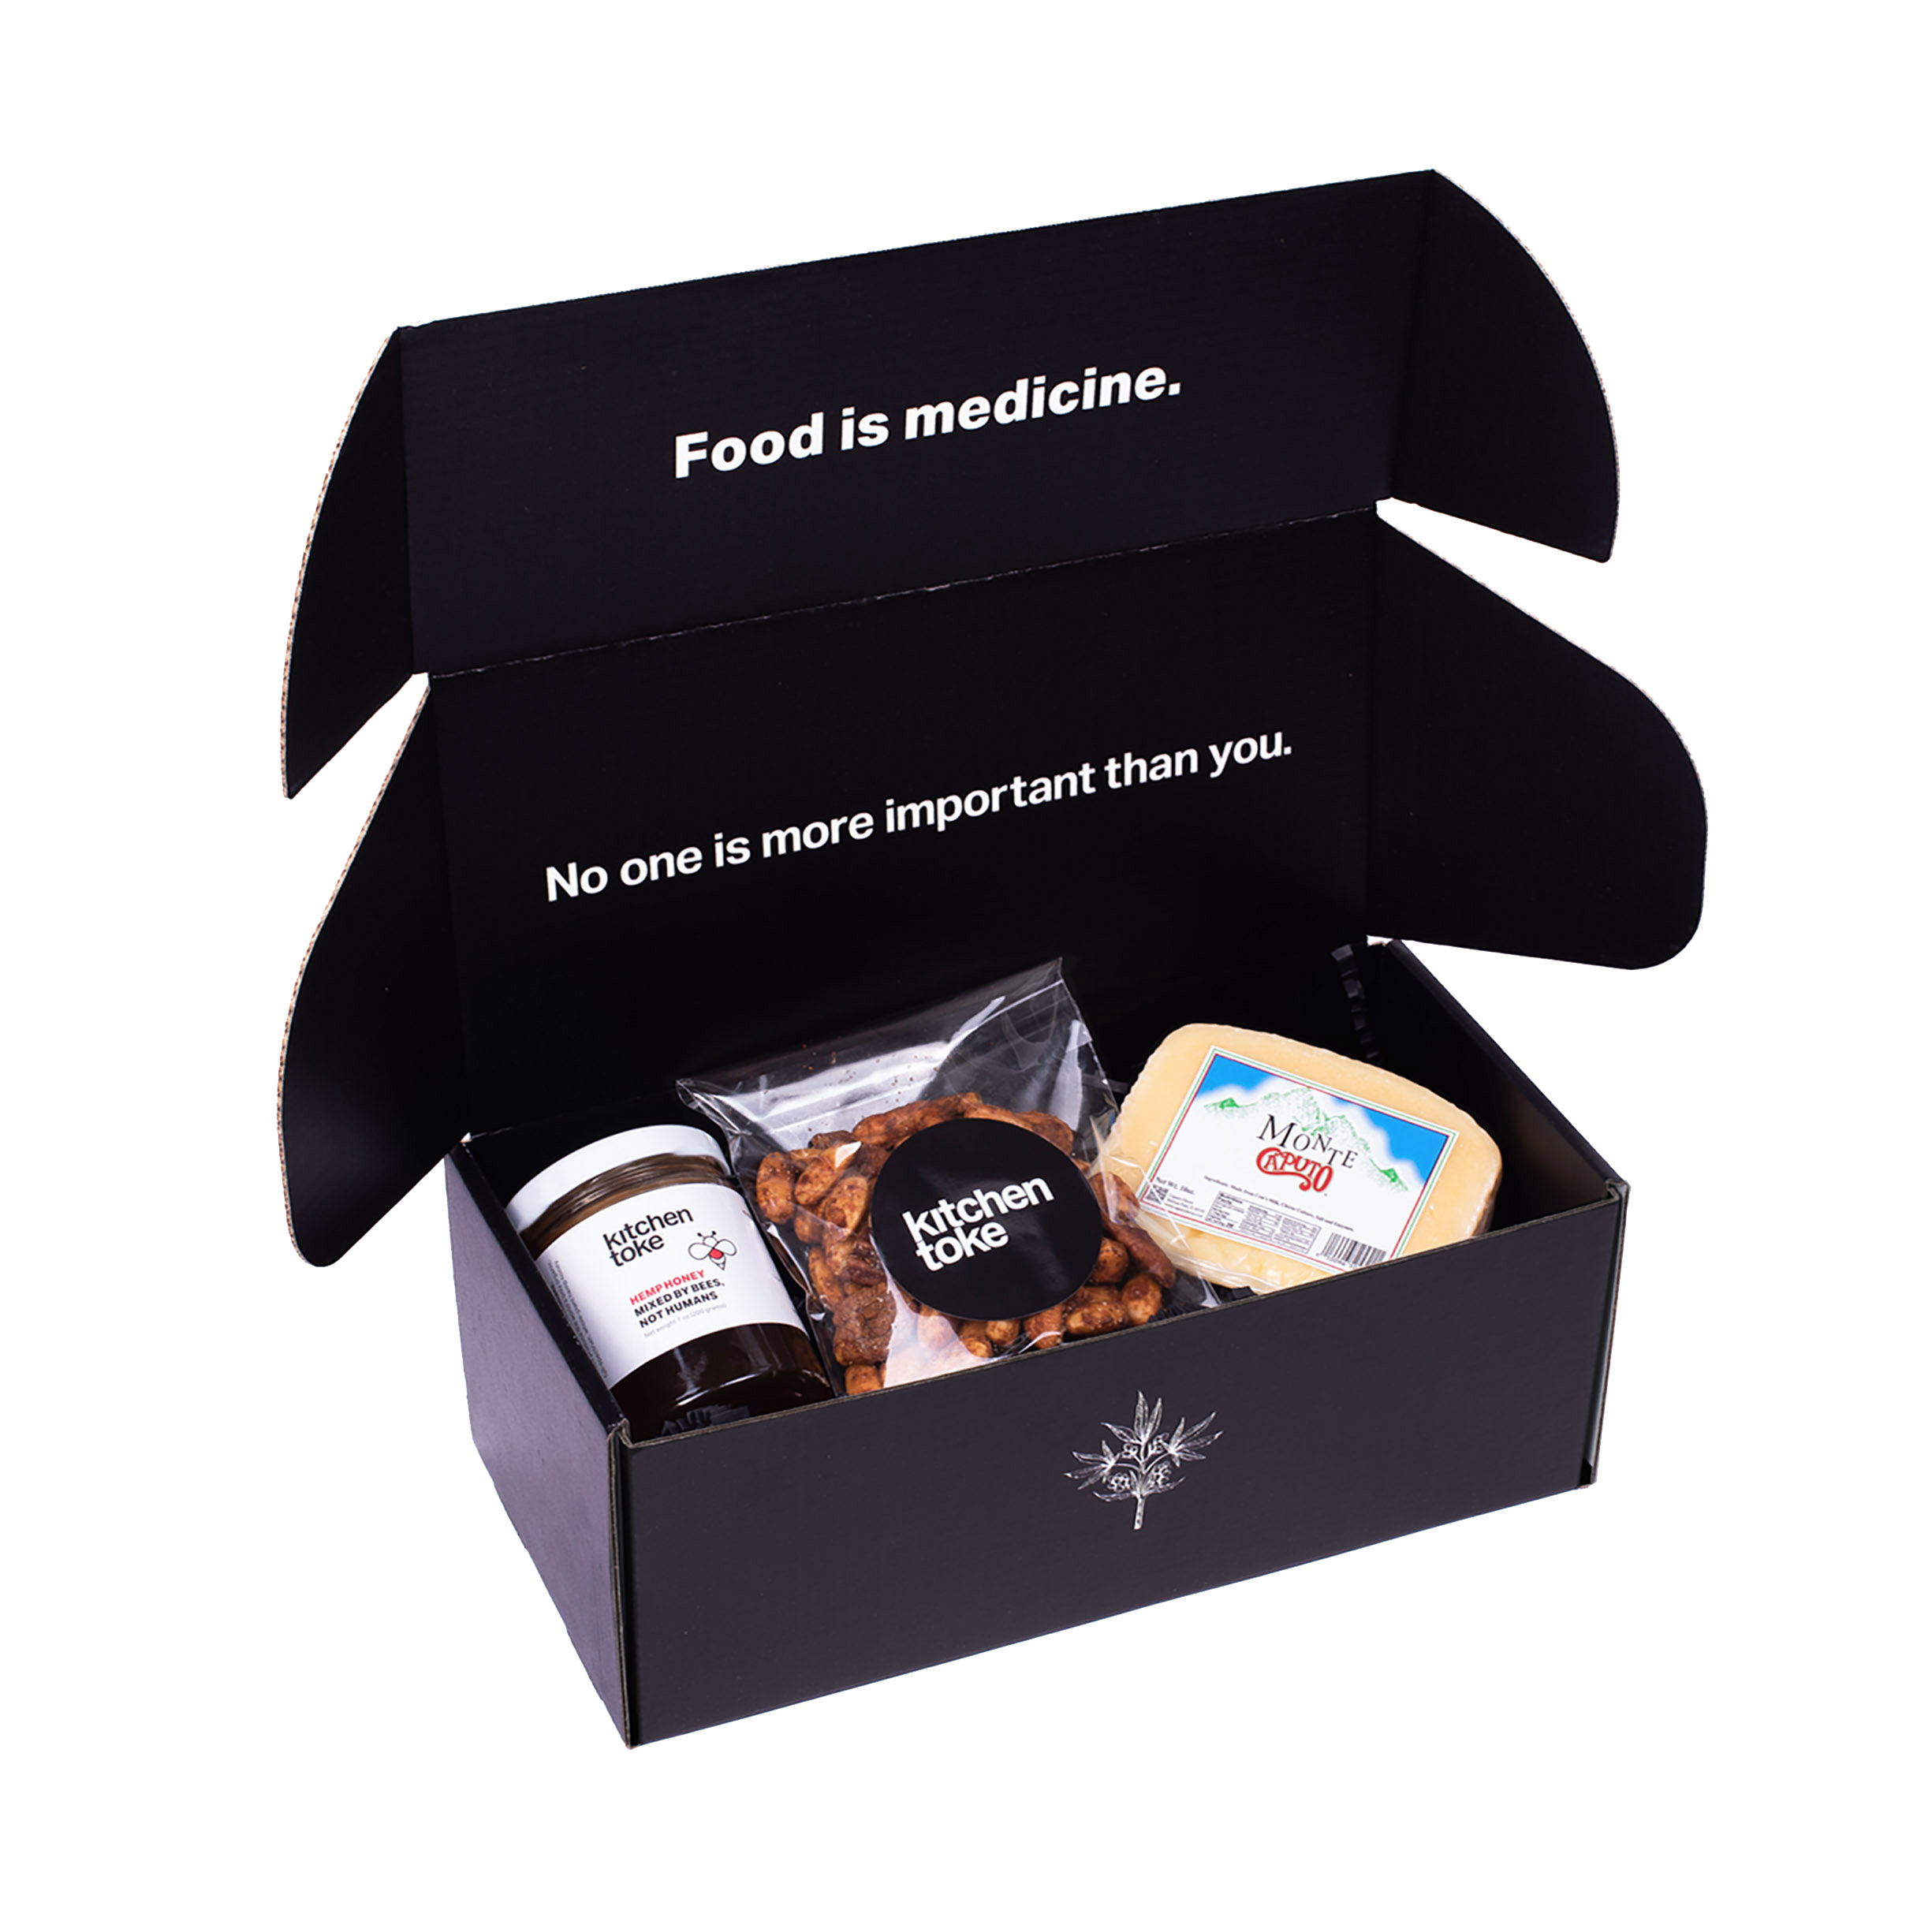 Kitchen Toke Gift  Box with Honey, Nuts and cheese